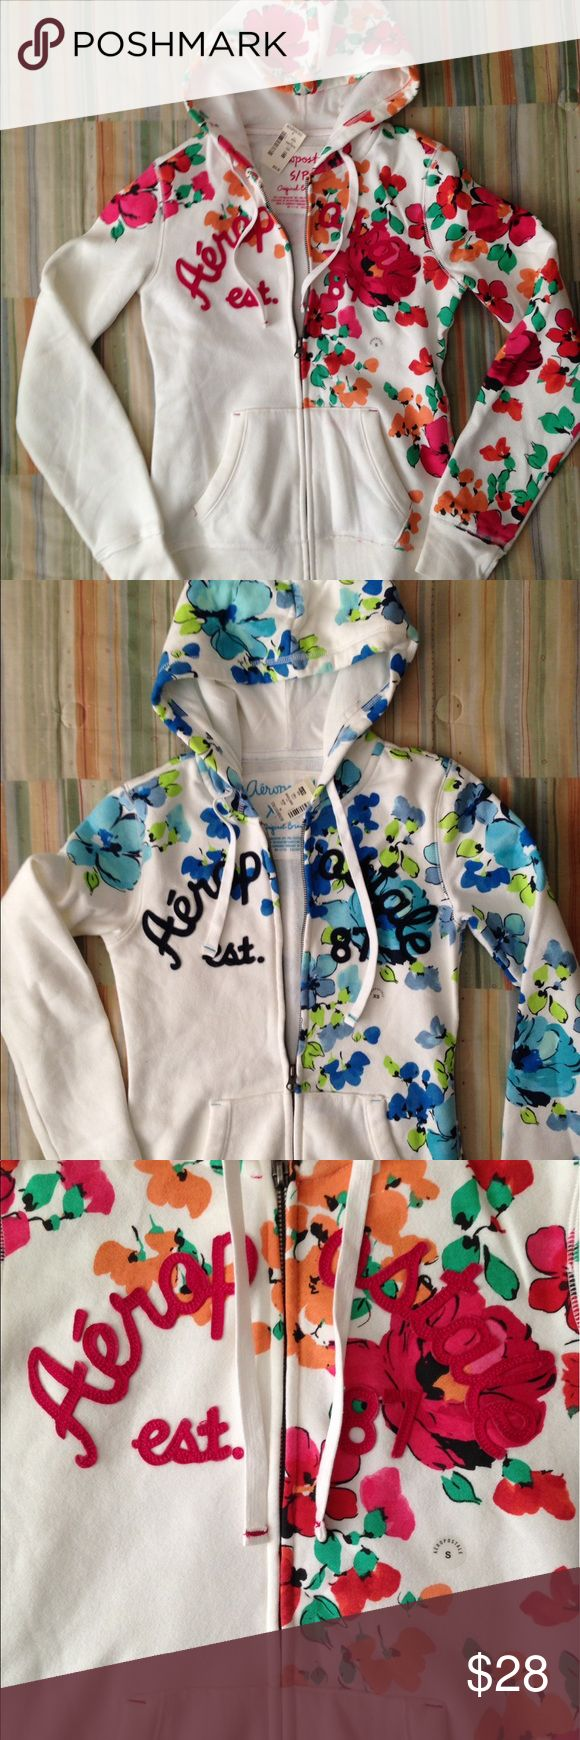 Aeropostale Floral Hoodies Gorgeous but too small for me! New with tags Aeropostale Jackets & Coats